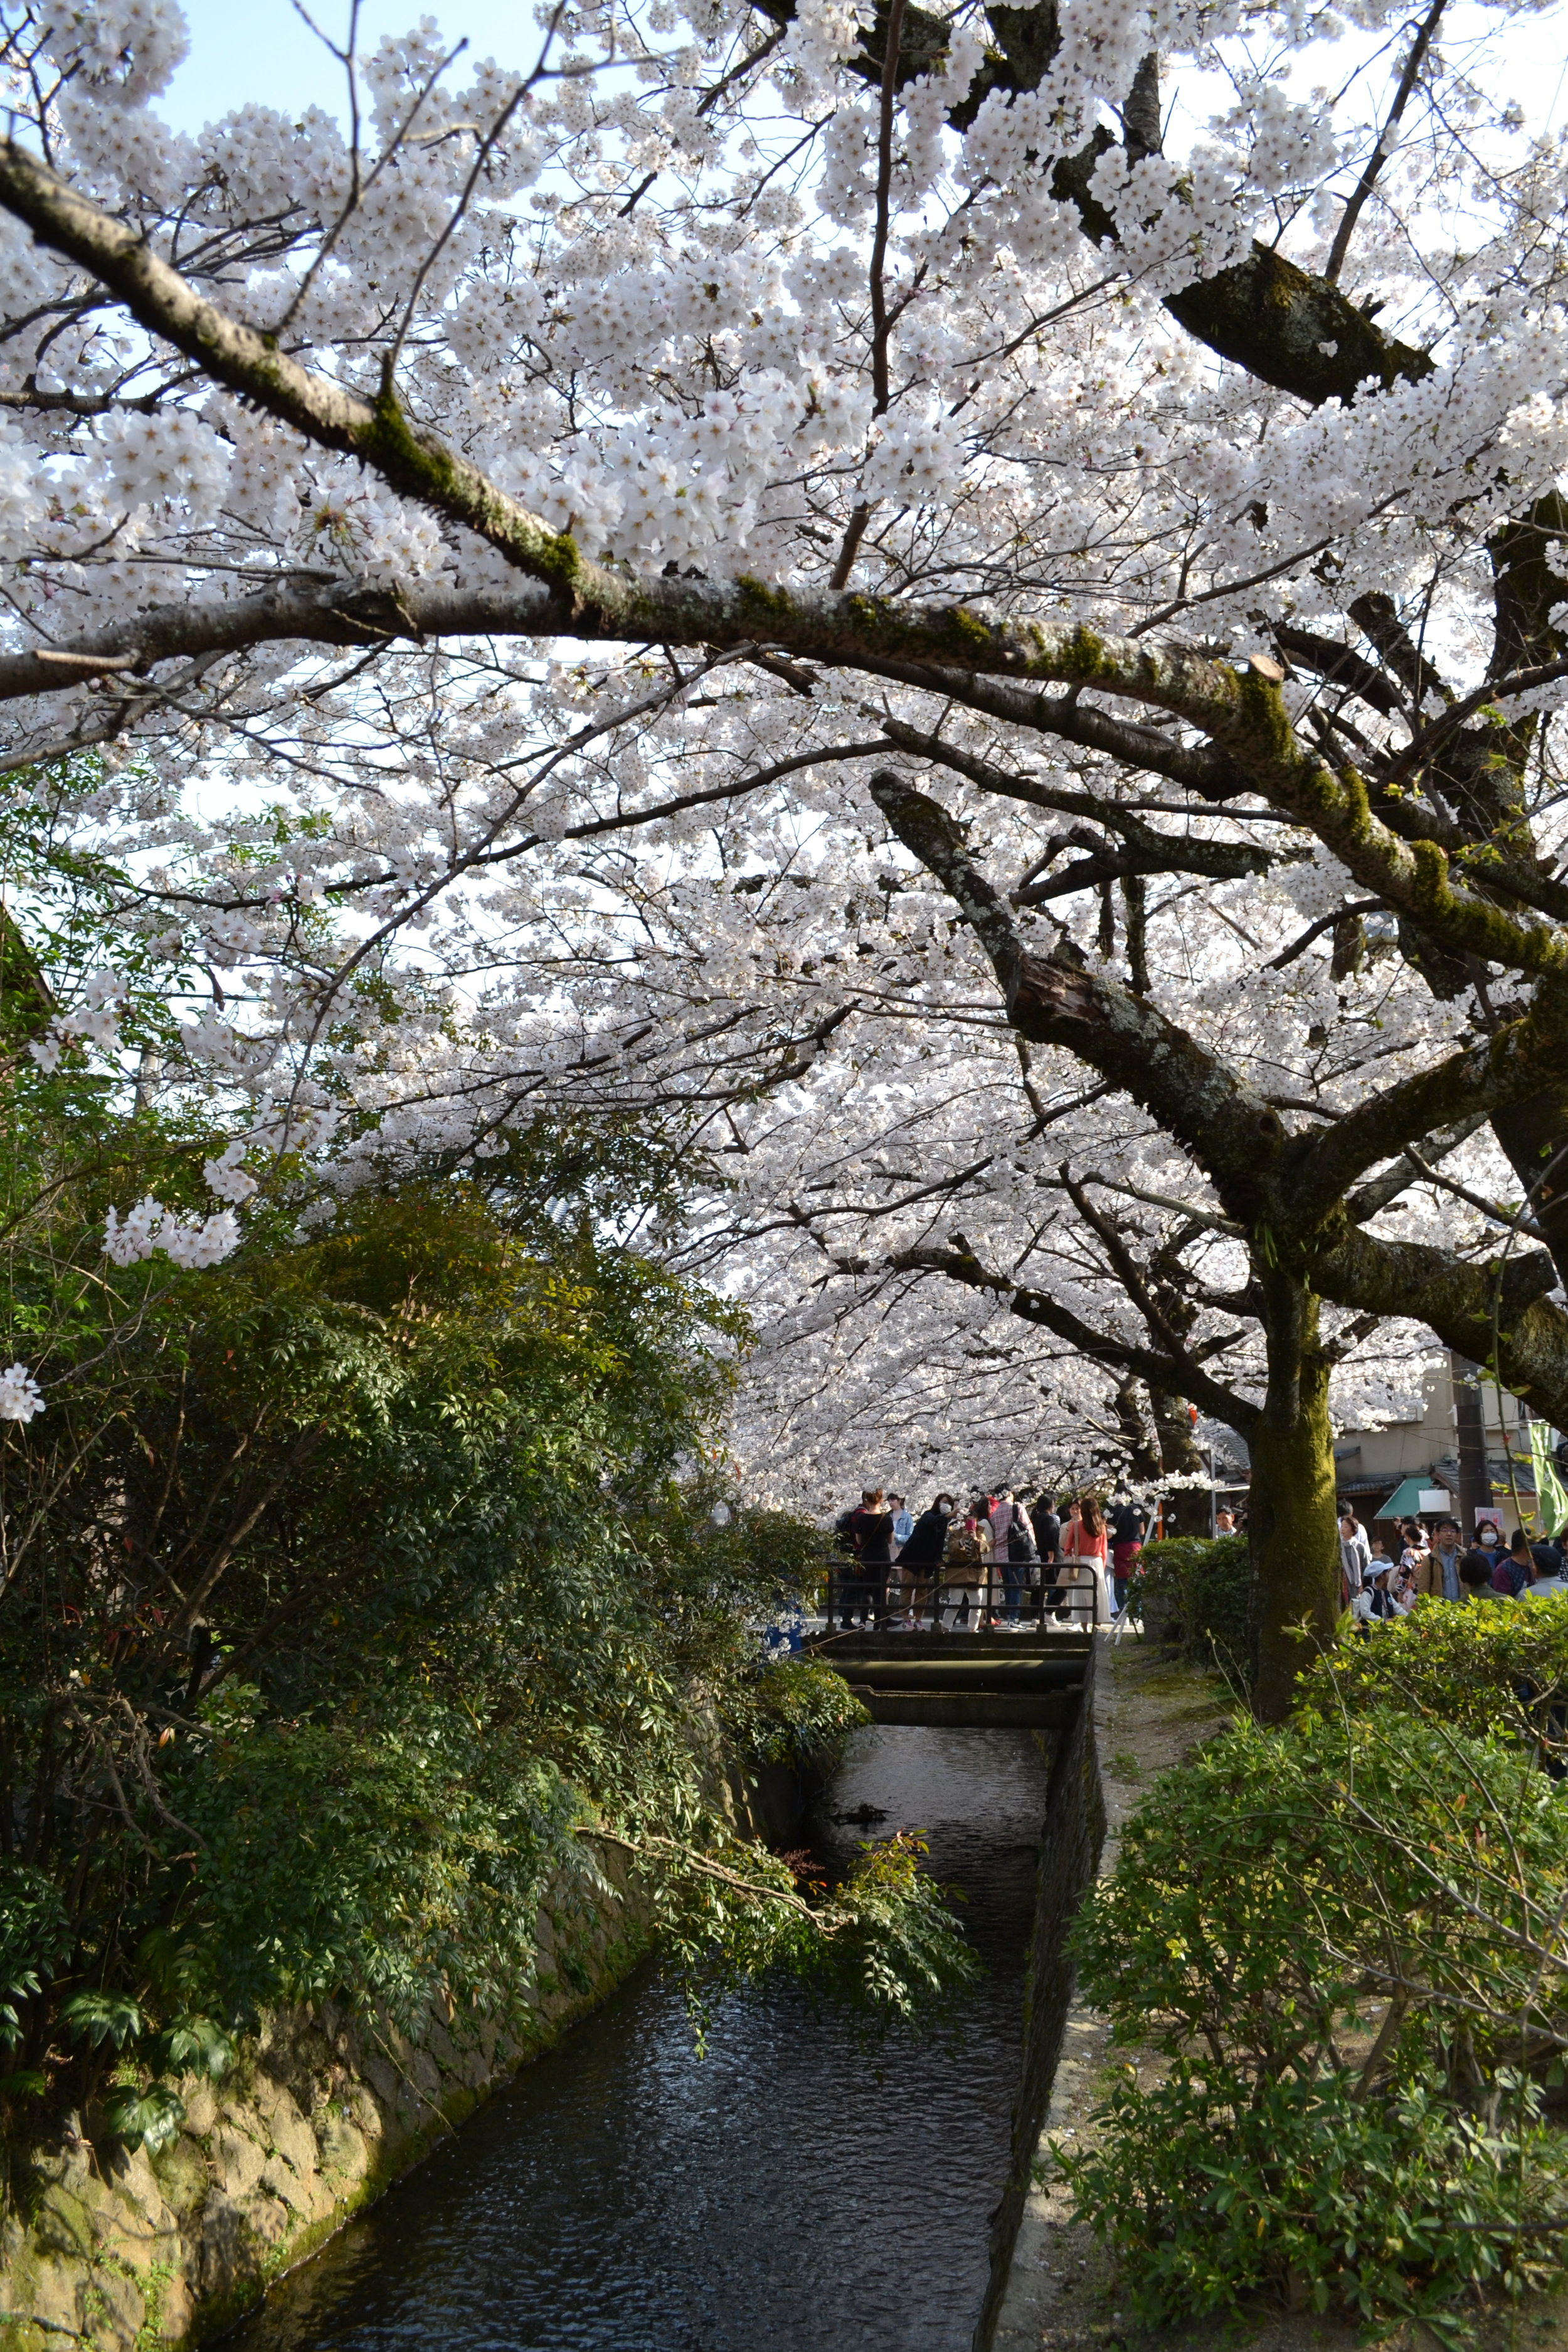 I took this picture standing on the mini bridges of the canal, which is connected to Okazaki Canal near Heian Shrine where I visited before Philosopher's Path. There were many people on the other bridge in the distance, probably taking a close picture of the cherry blossoms.